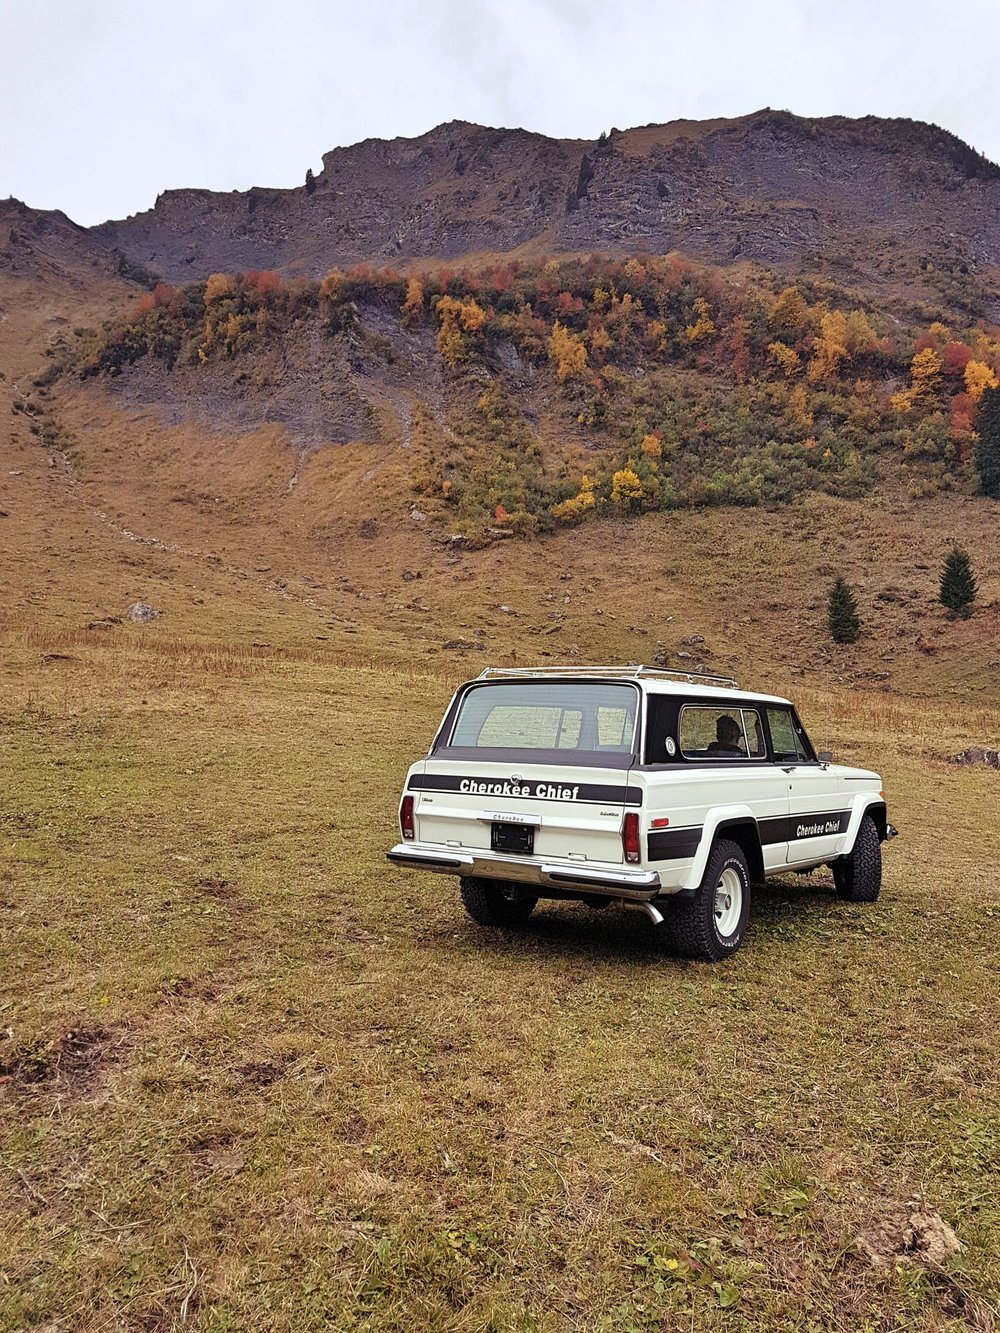 jeep-cherokee-chief-1978-shooting-morgins-switzerland-58.jpg